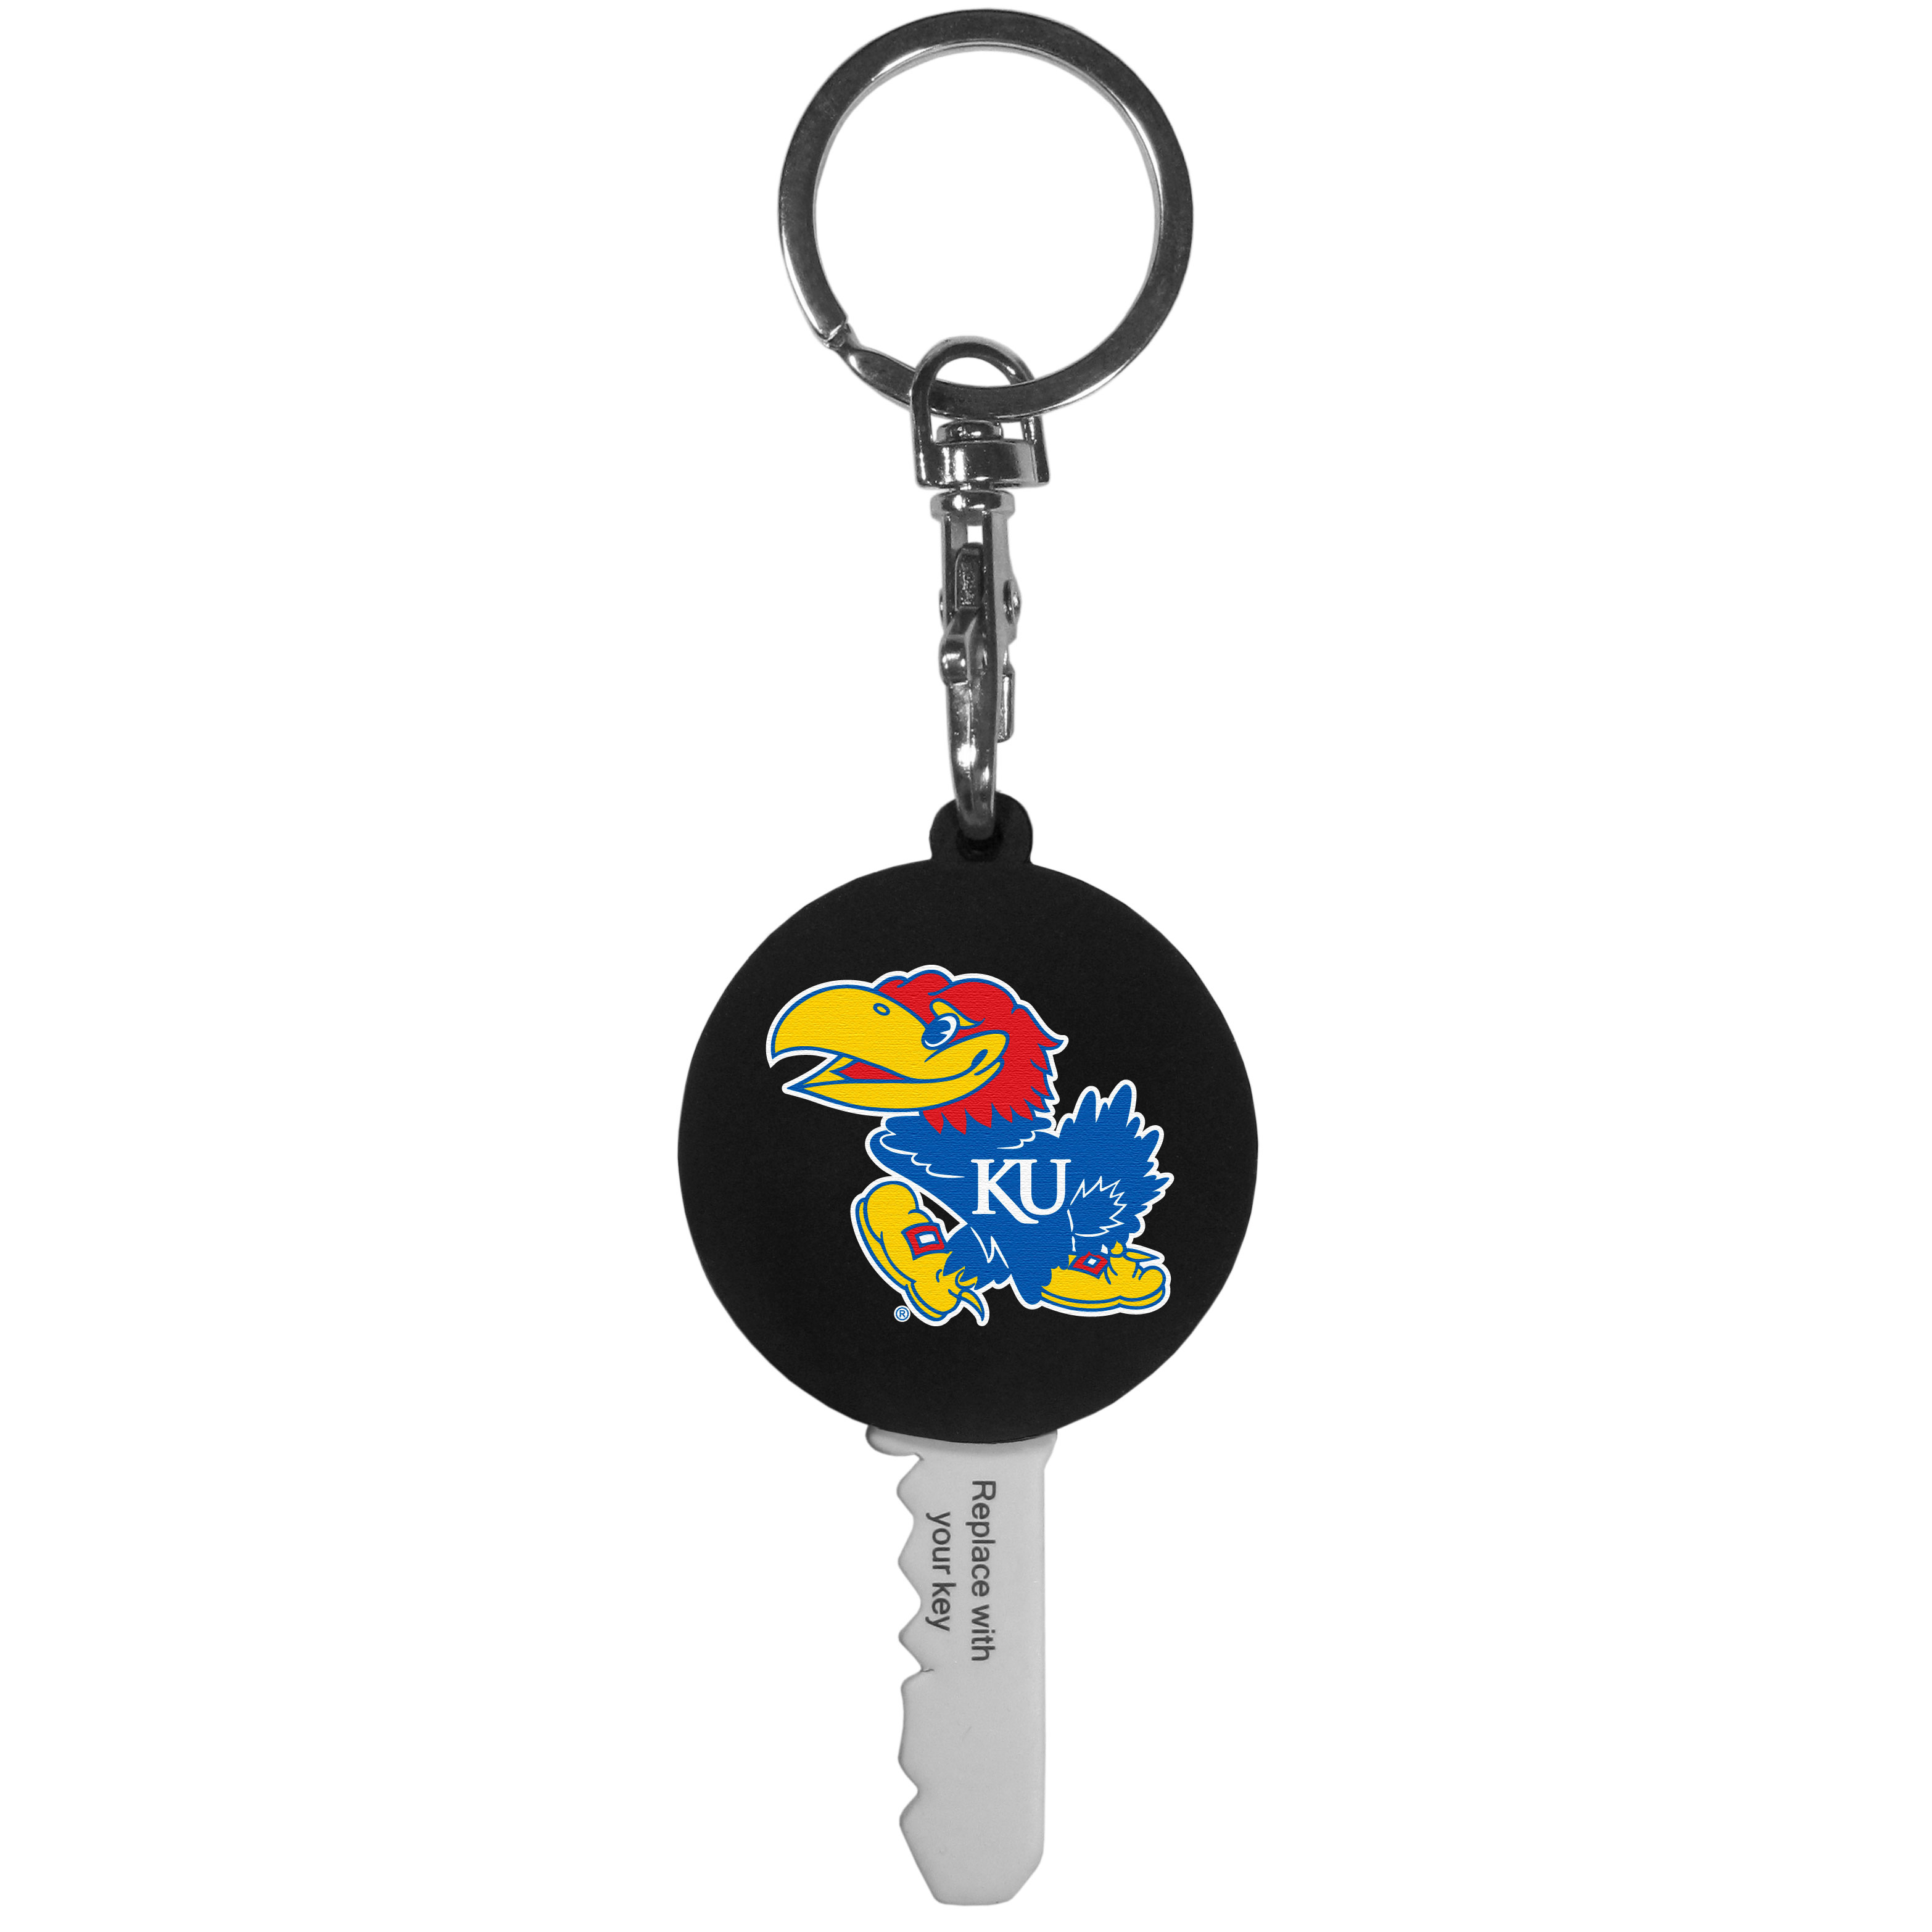 Kansas Jayhawks Mini Light Key Topper - This super handy little key topper has a built in mini light that illuminates the lock so you do not have to fumble in the dark trying to open your door. You slide your house key into the top of the rubber key topper and your ready to go. The topper features a Kansas Jayhawks logo on the front of the topper.